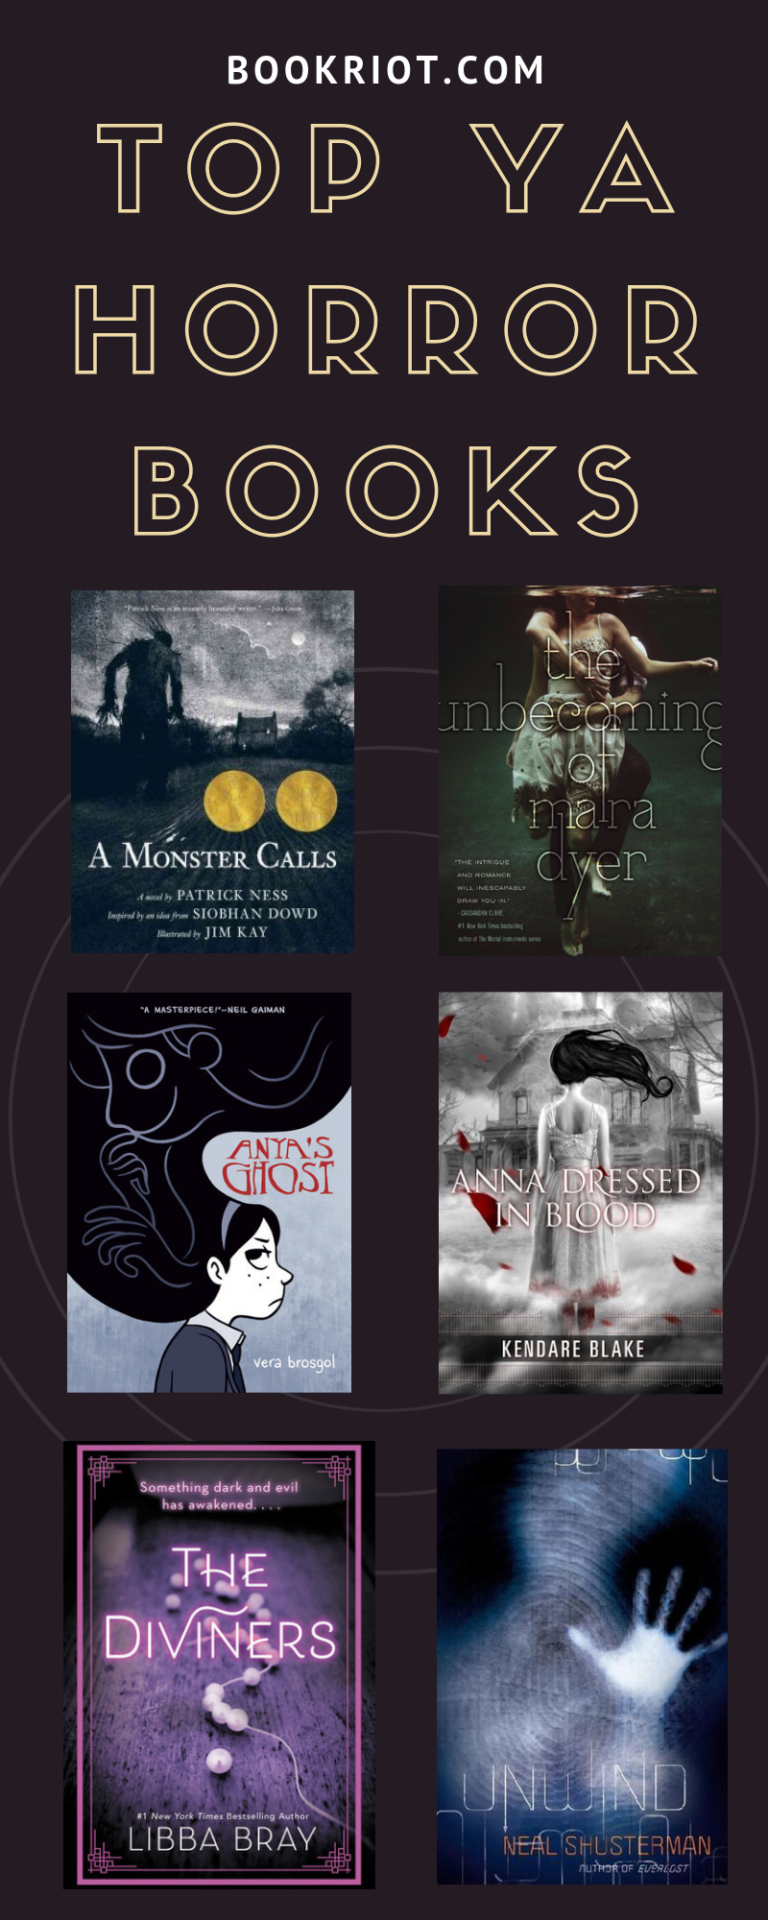 Where To Start? The Top YA Horror Books on Goodreads | Book